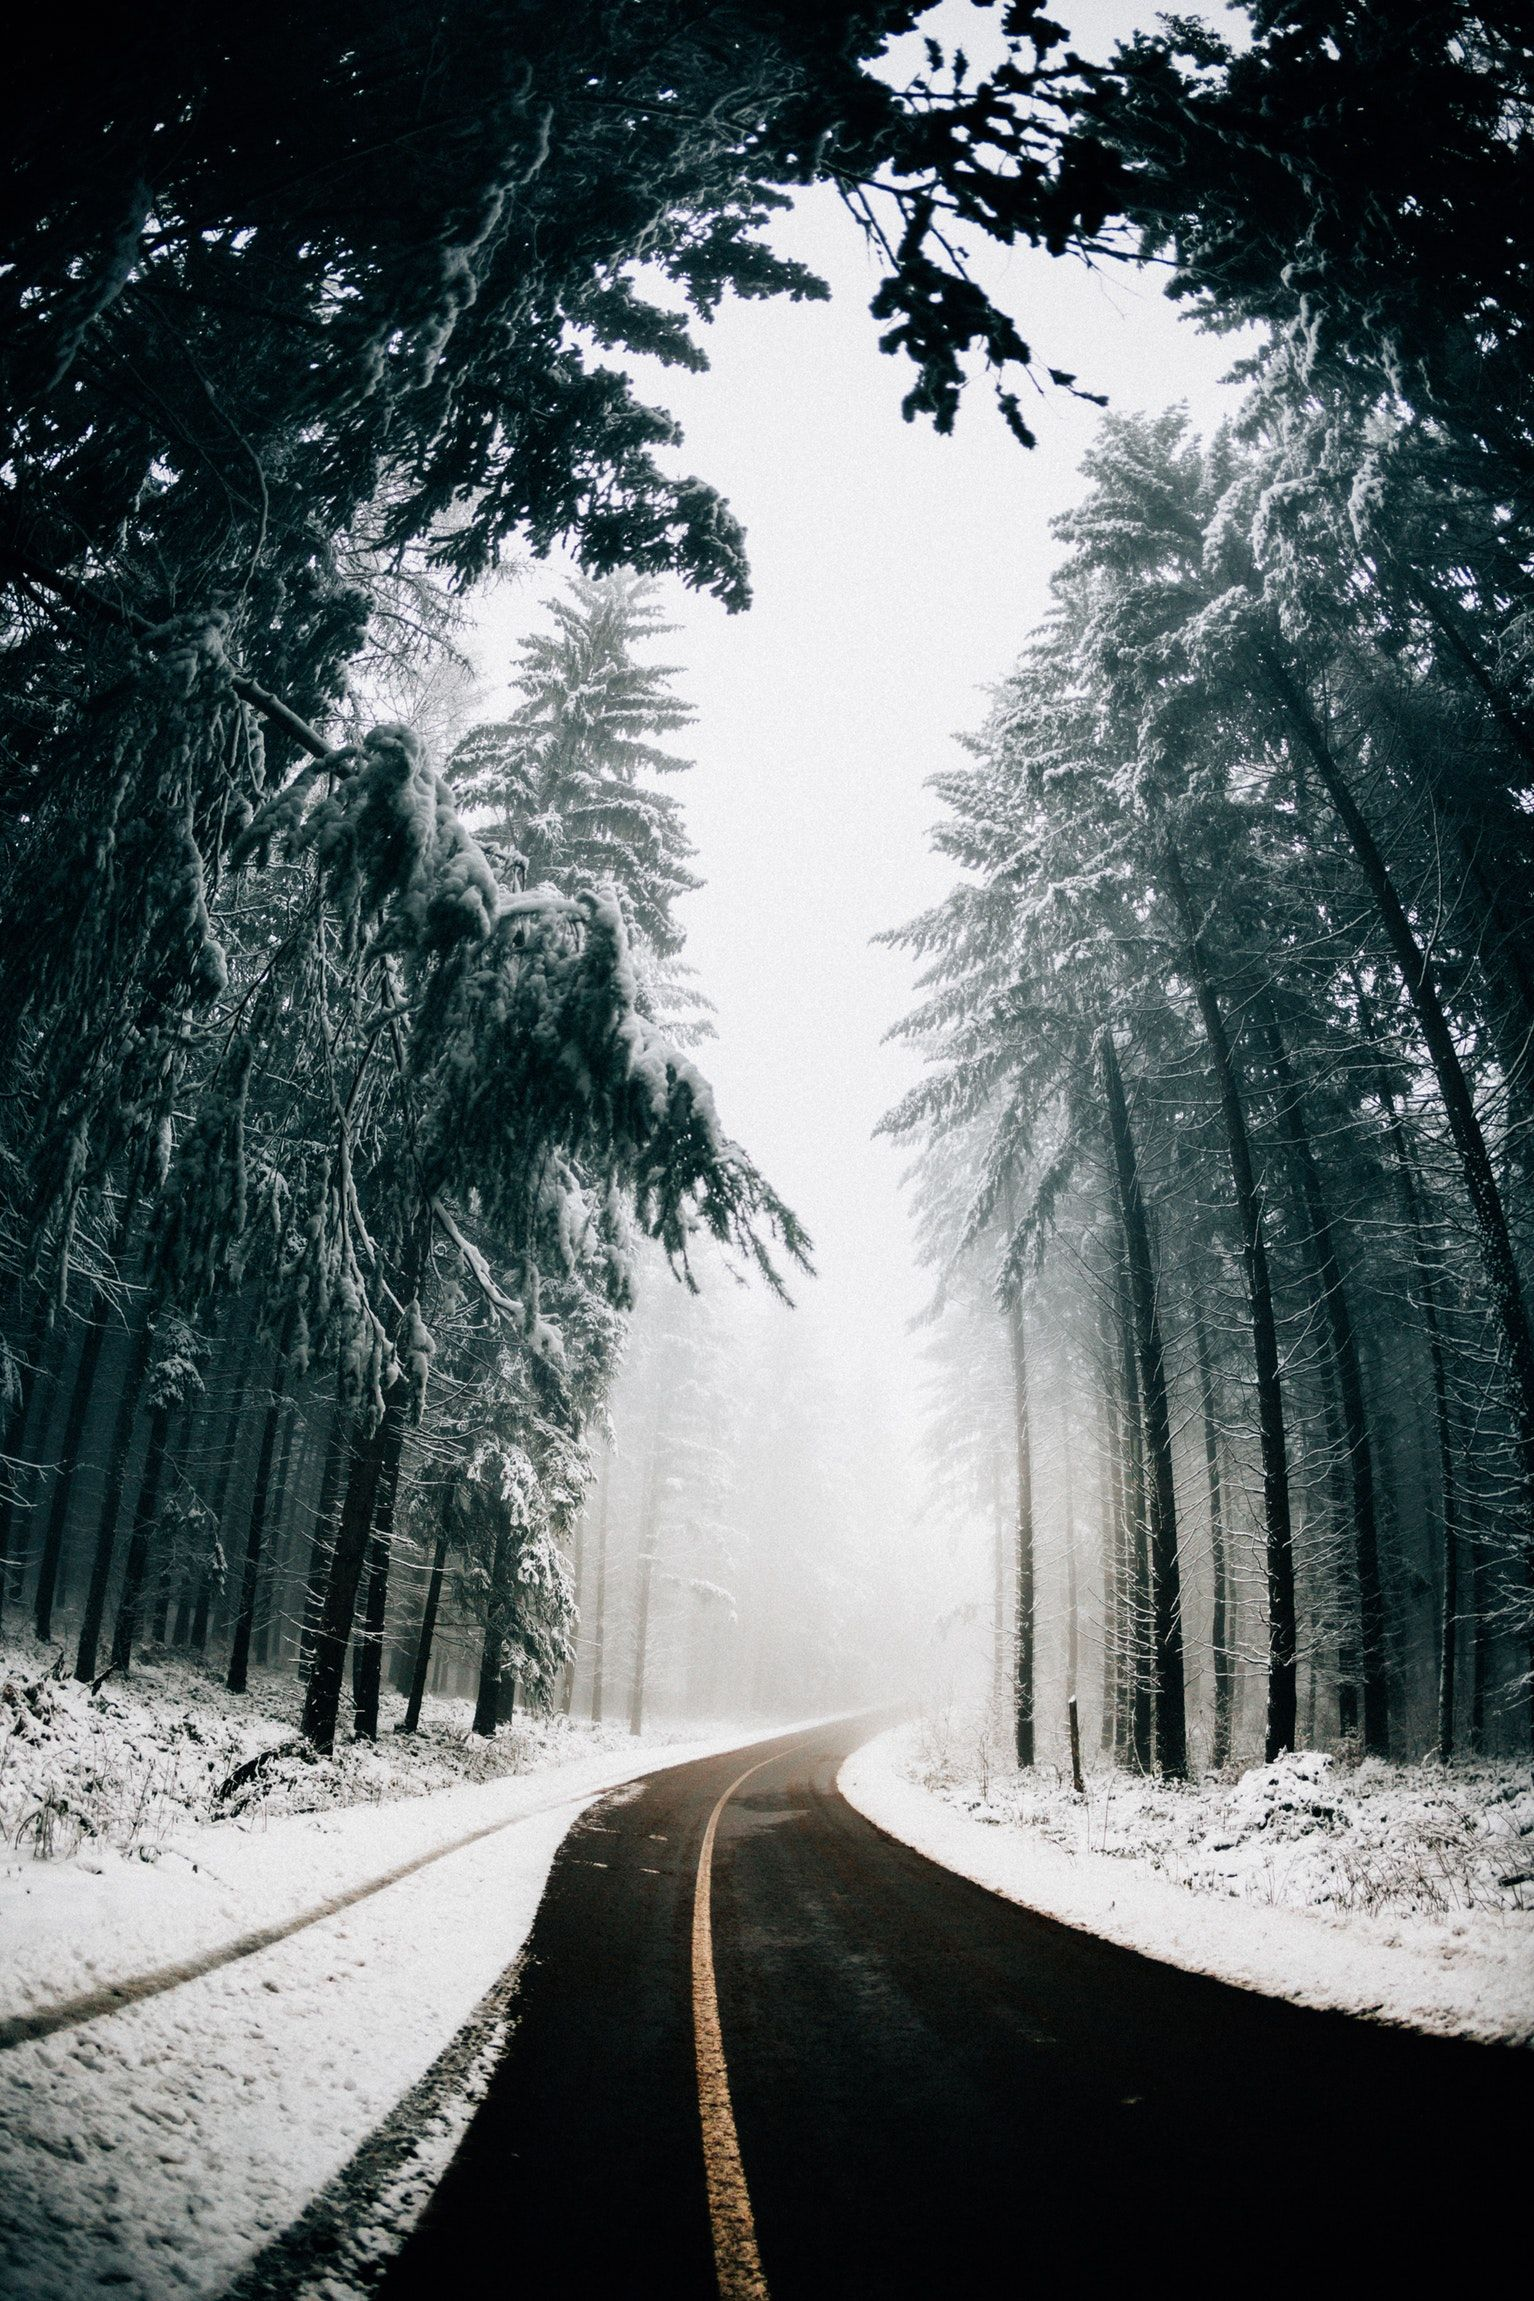 Asphalt Road In Between Trees Covered With Snow Winter Scenery Winter Photography Nature Photography Hd wallpaper snow winter road asphalt